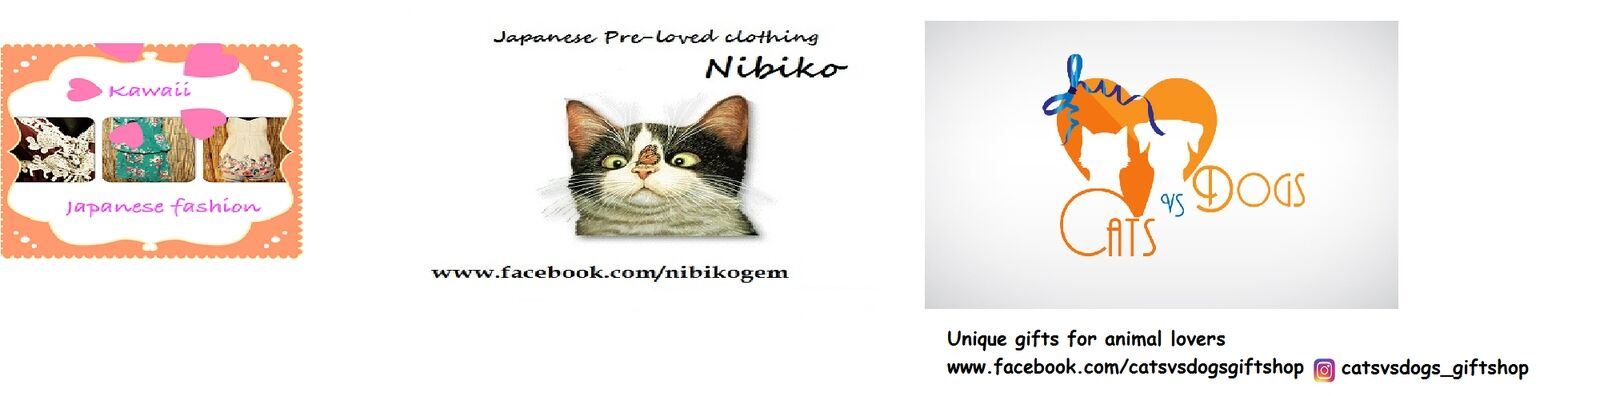 Nibiko/Cats VS Dogs gift shop